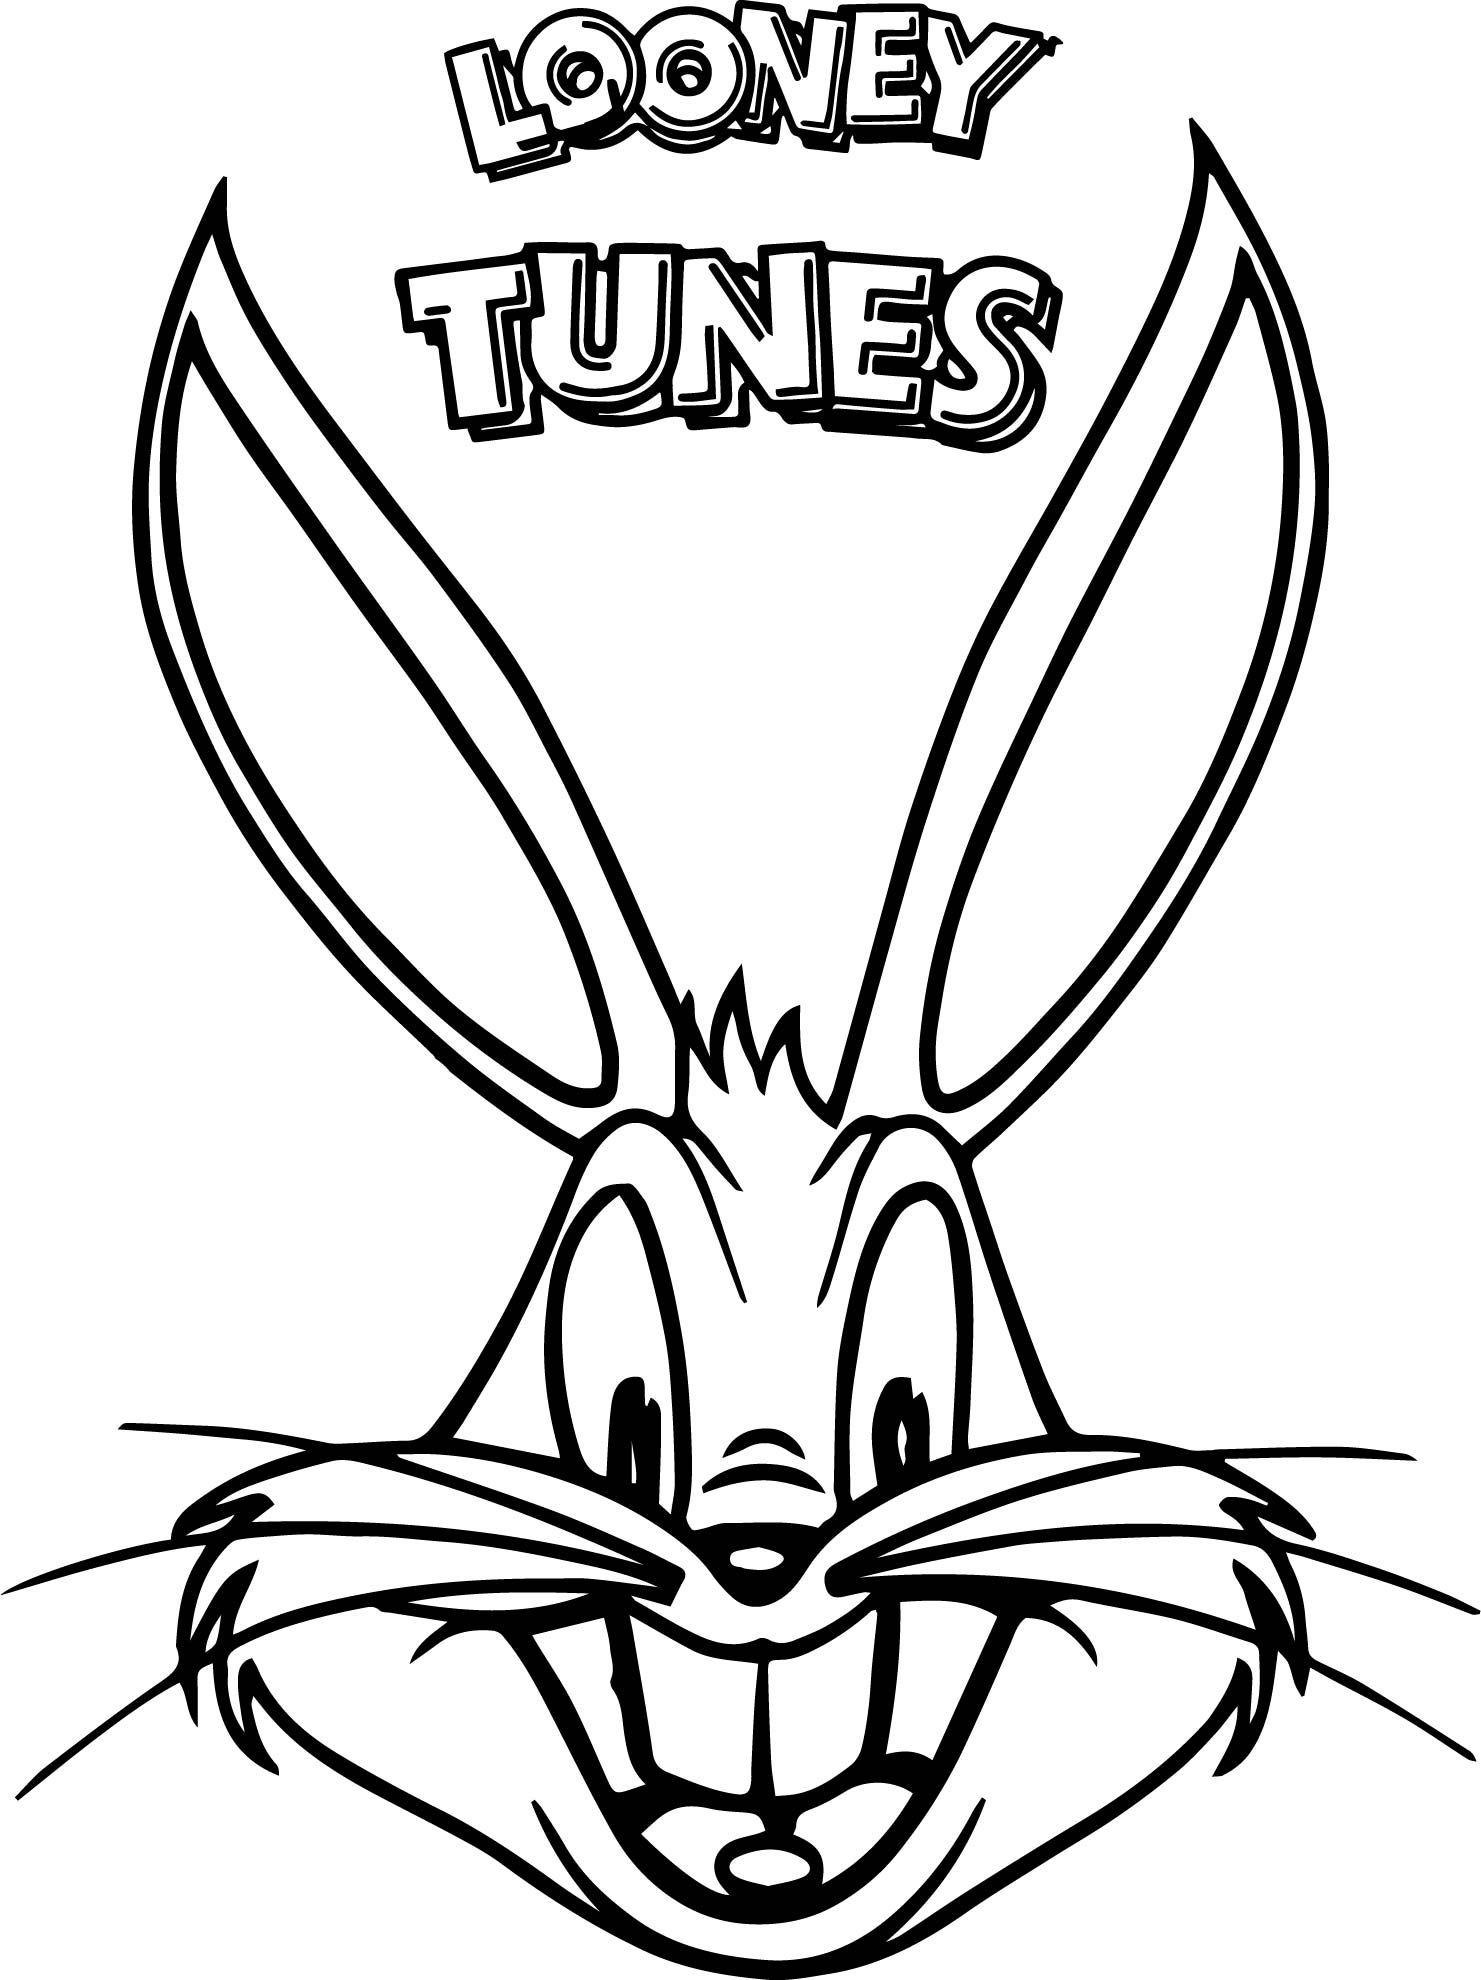 looney tunes coloring pages bugs bunny baby bugs playing rc plane in baby looney tunes coloring bugs bunny coloring pages tunes looney